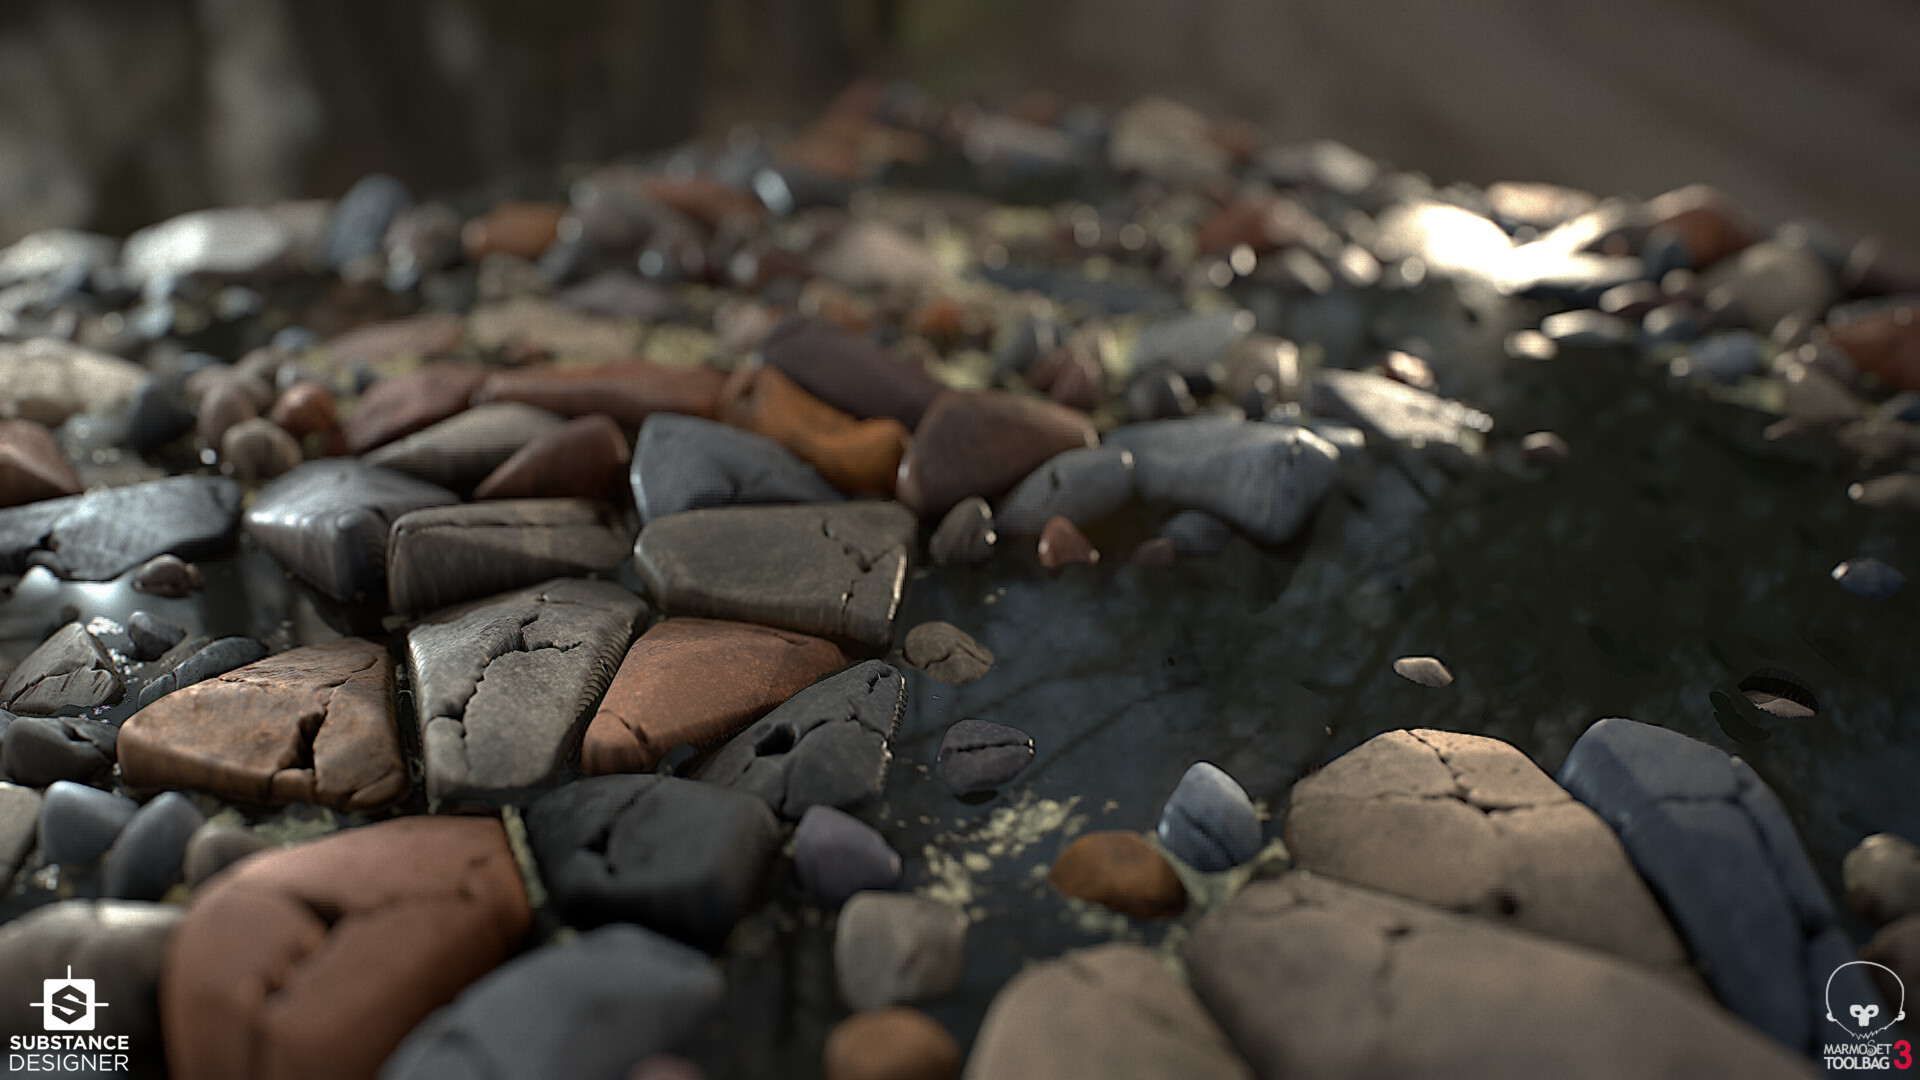 Gregory bove gregou riverrocks render02